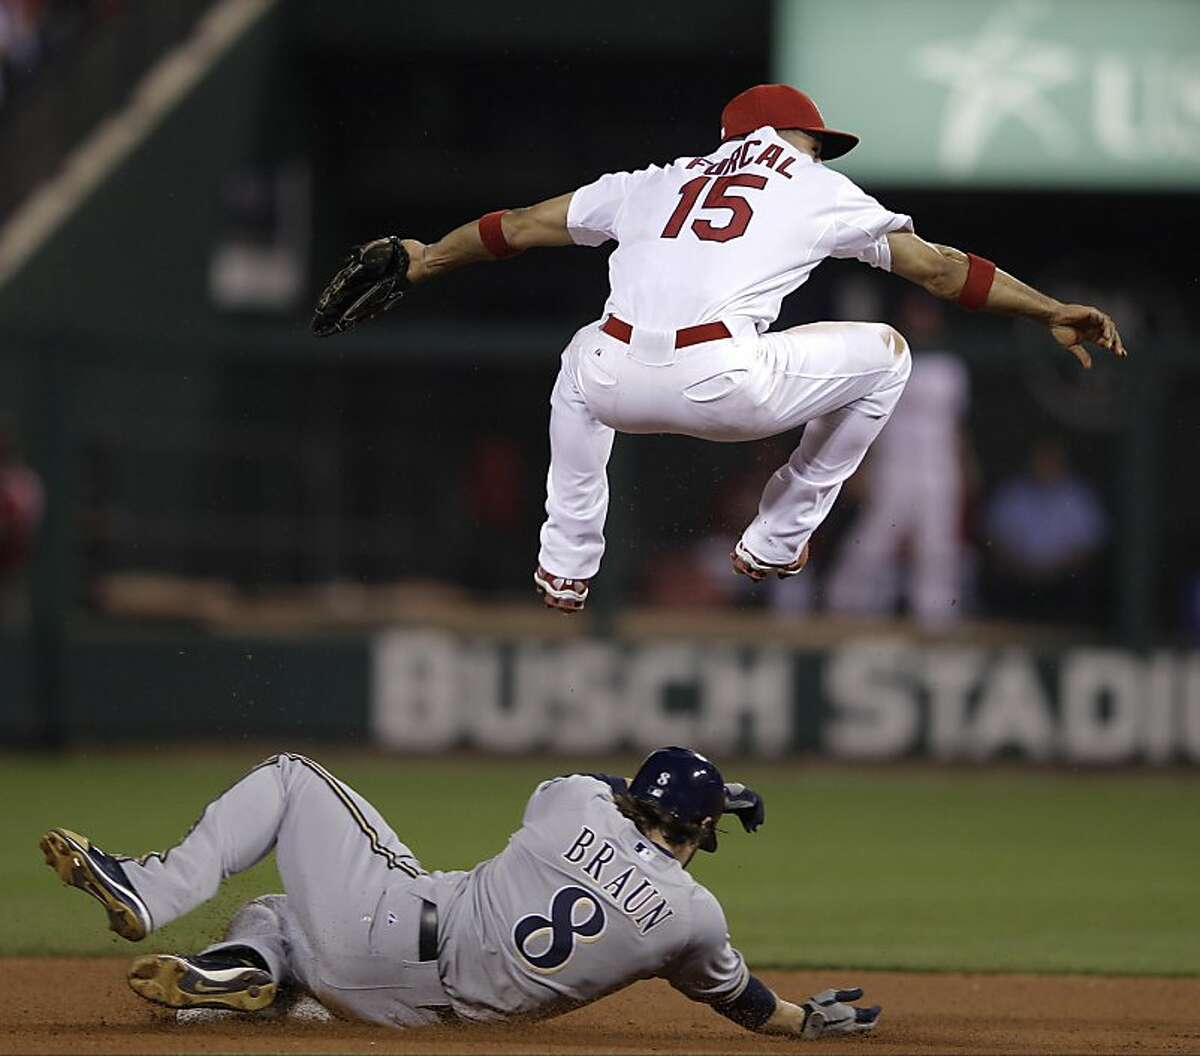 St. Louis Cardinals' Rafael Furcal (15) leaps over Milwaukee Brewers' Ryan Braun (8) to urn a double play on a ball hit by Prince Fielder during the third inning of Game 3 of baseball's National League championship series Wednesday, Oct. 12, 2011, in St. Louis. (AP Photo/Matt Slocum)